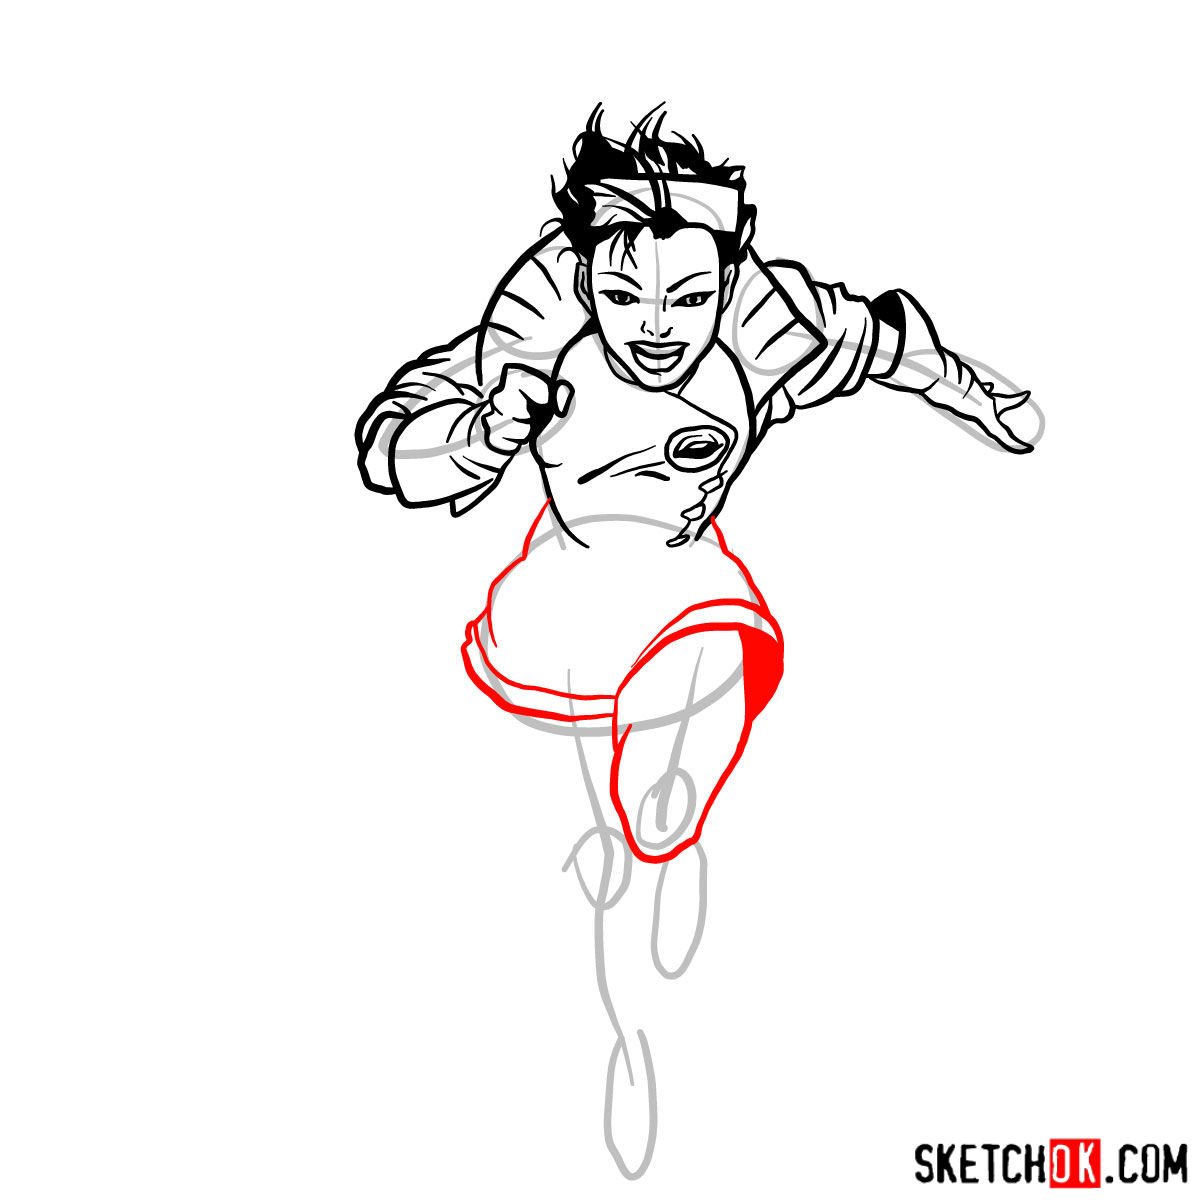 How to draw Jubilee mutant from X-Men series - step 10